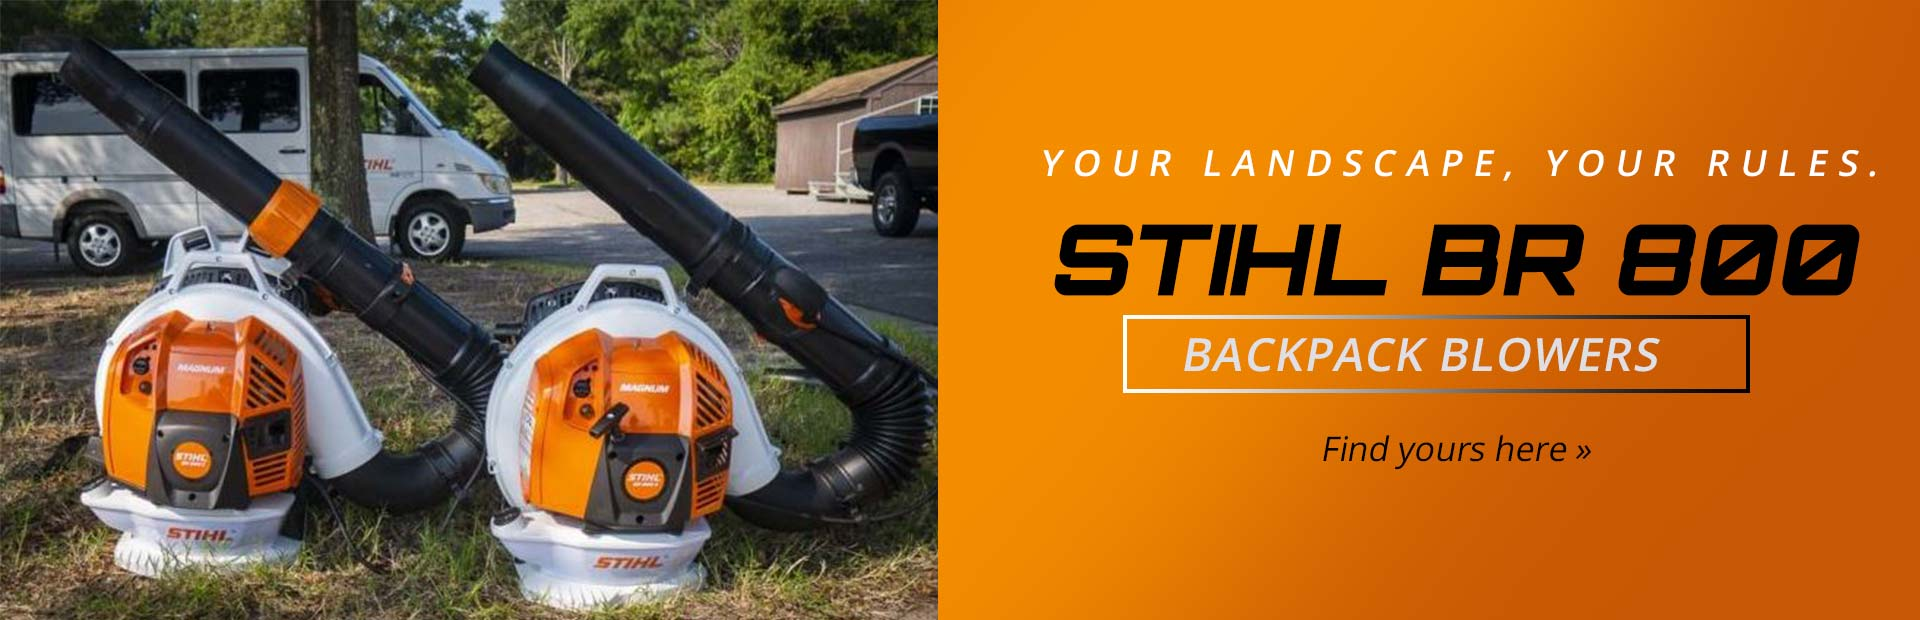 STIHL BR 800 Backpack Blowers: Click here to view the models.